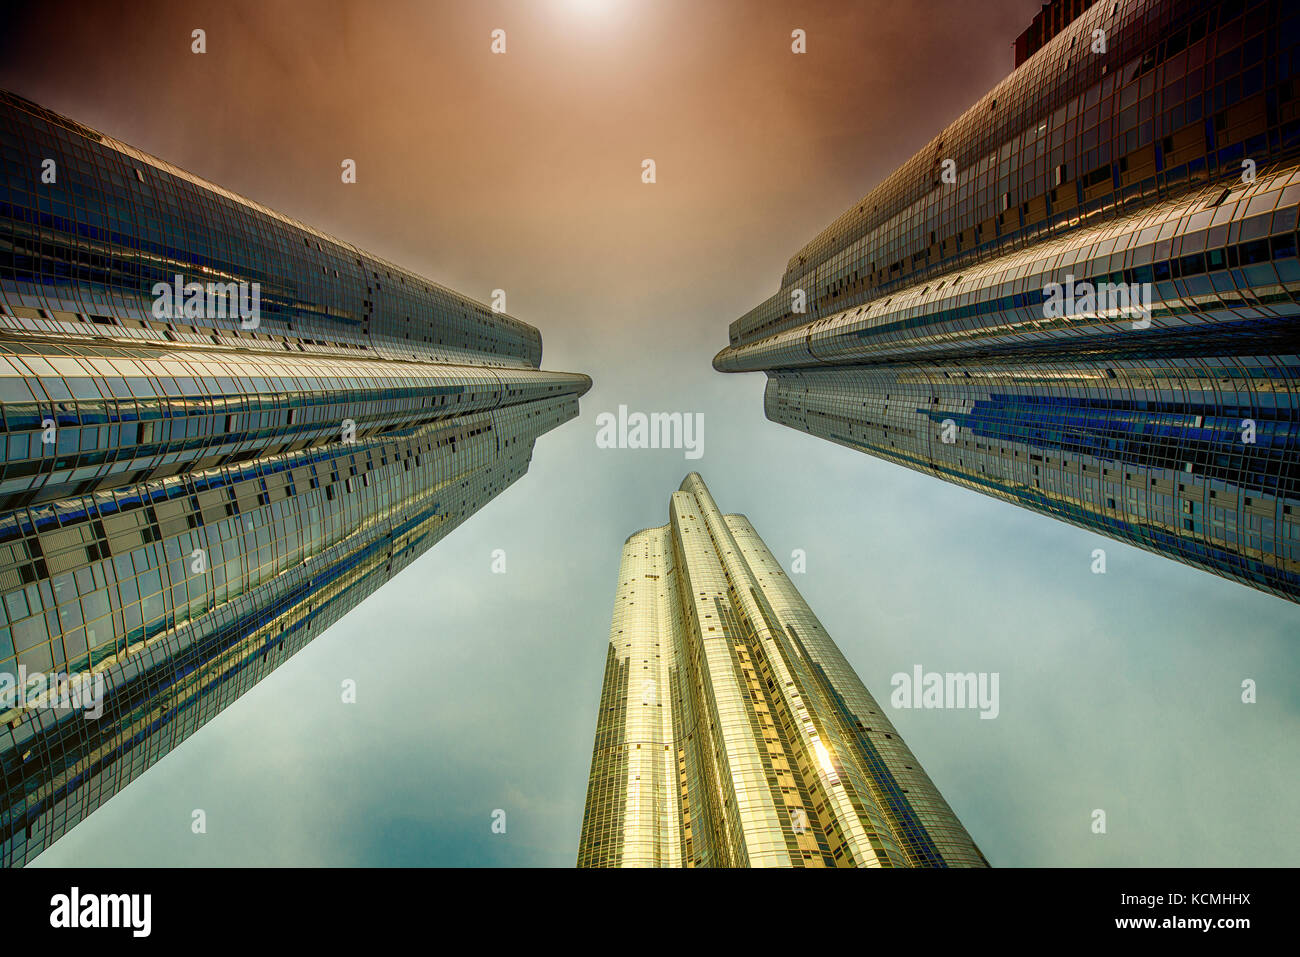 Three sky scrapers looking up into the edge of the sun. - Stock Image